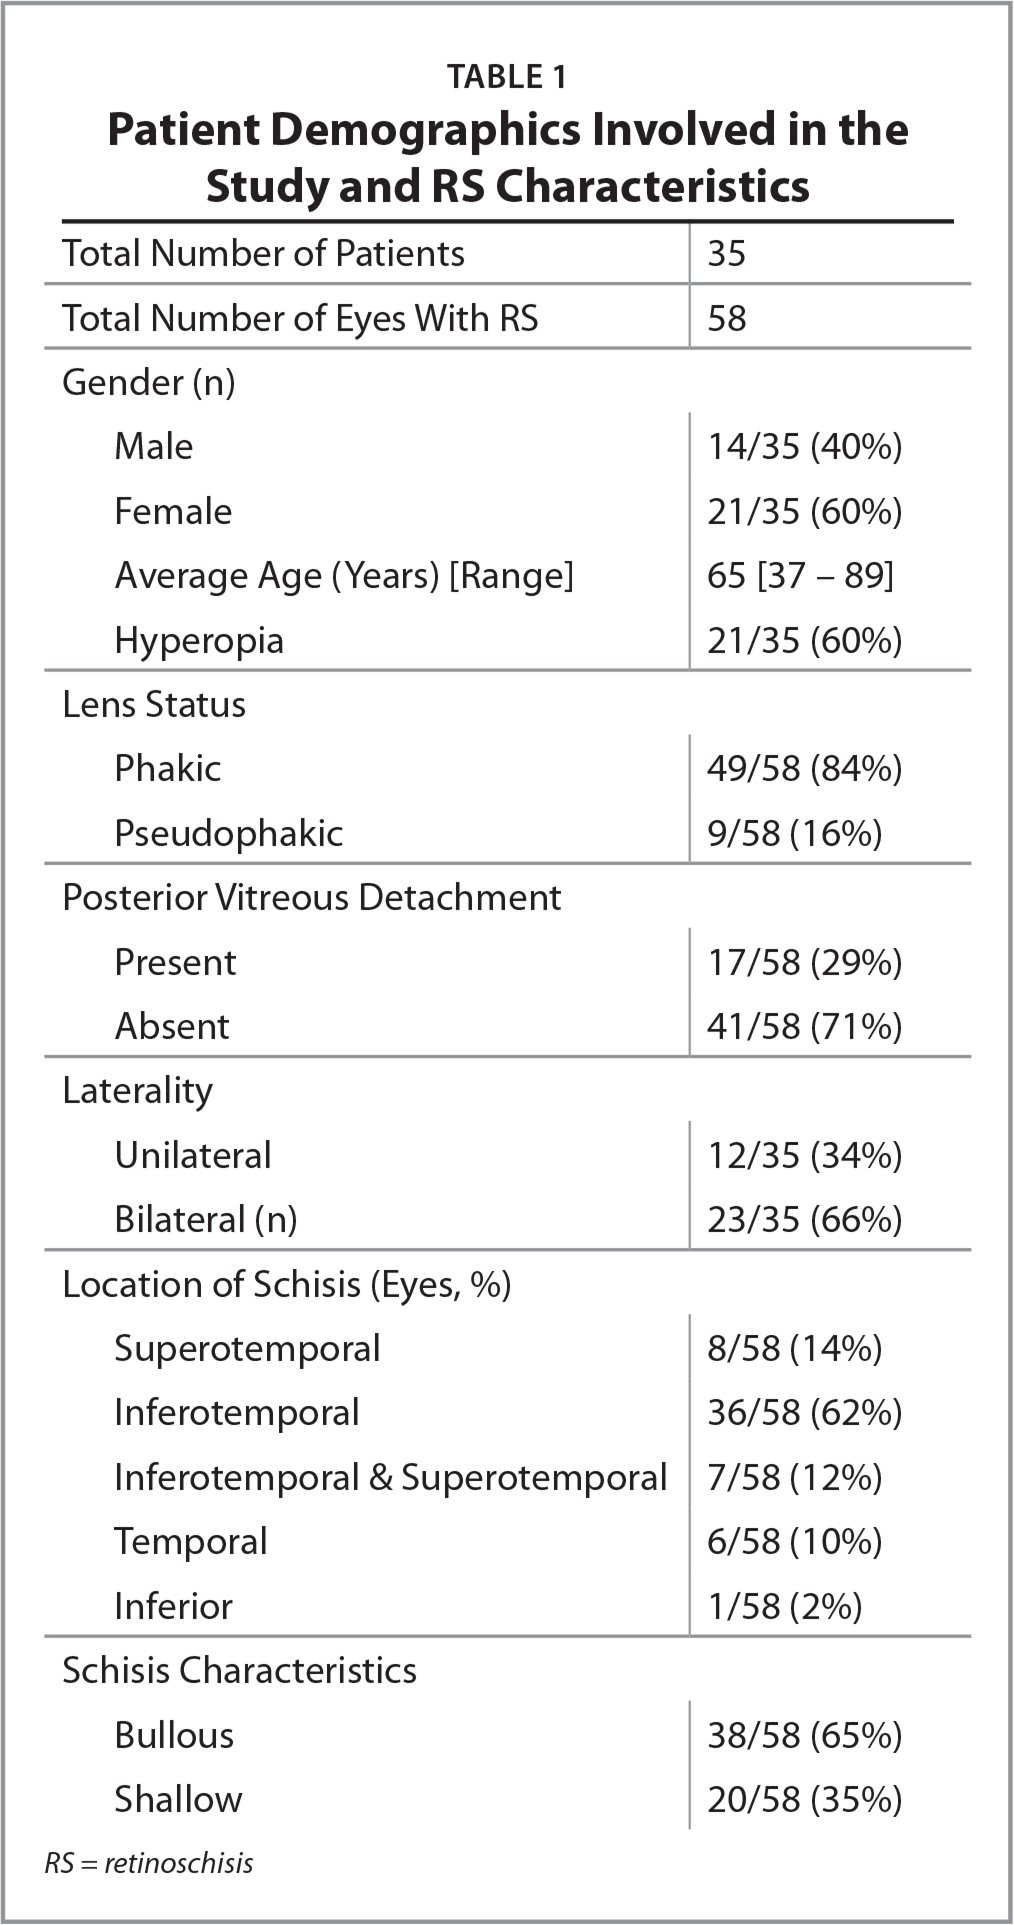 Patient Demographics Involved in the Study and RS Characteristics